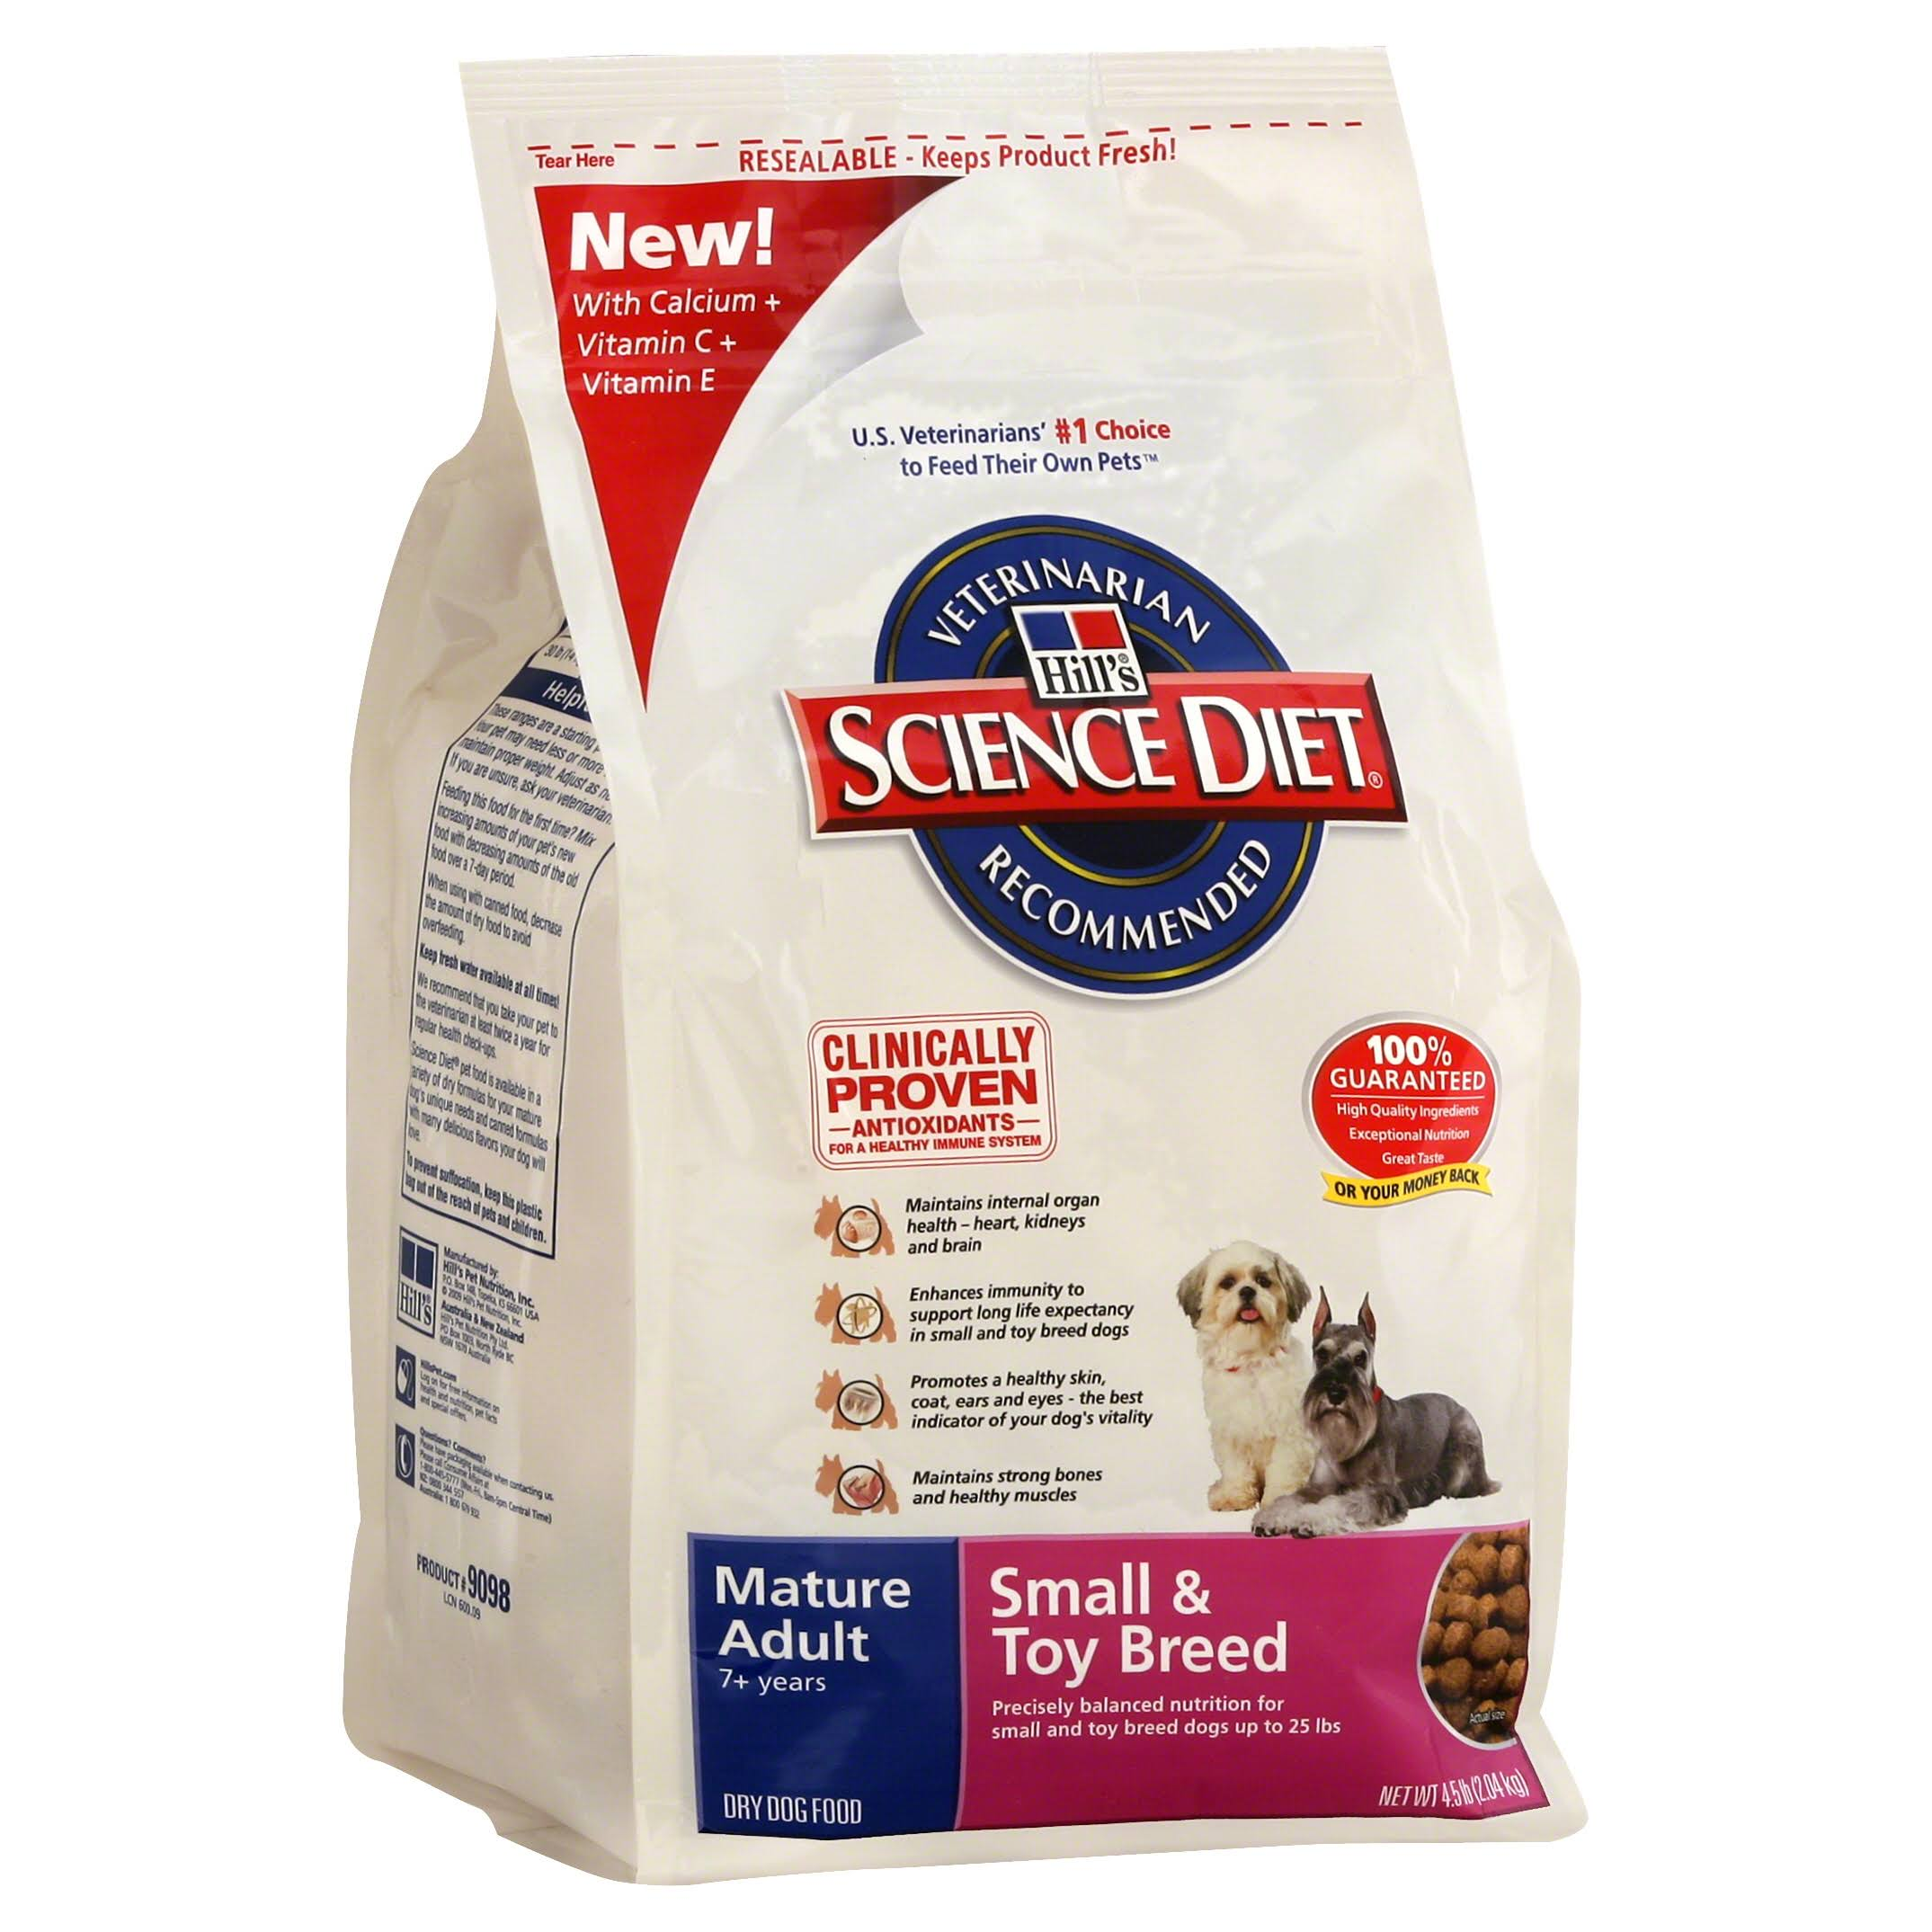 Hill's Science Diet Small and Toy Breed Dry Dog Food - Chicken Meal Rice & Barley Recipe, Adult 7+, 4.5lbs